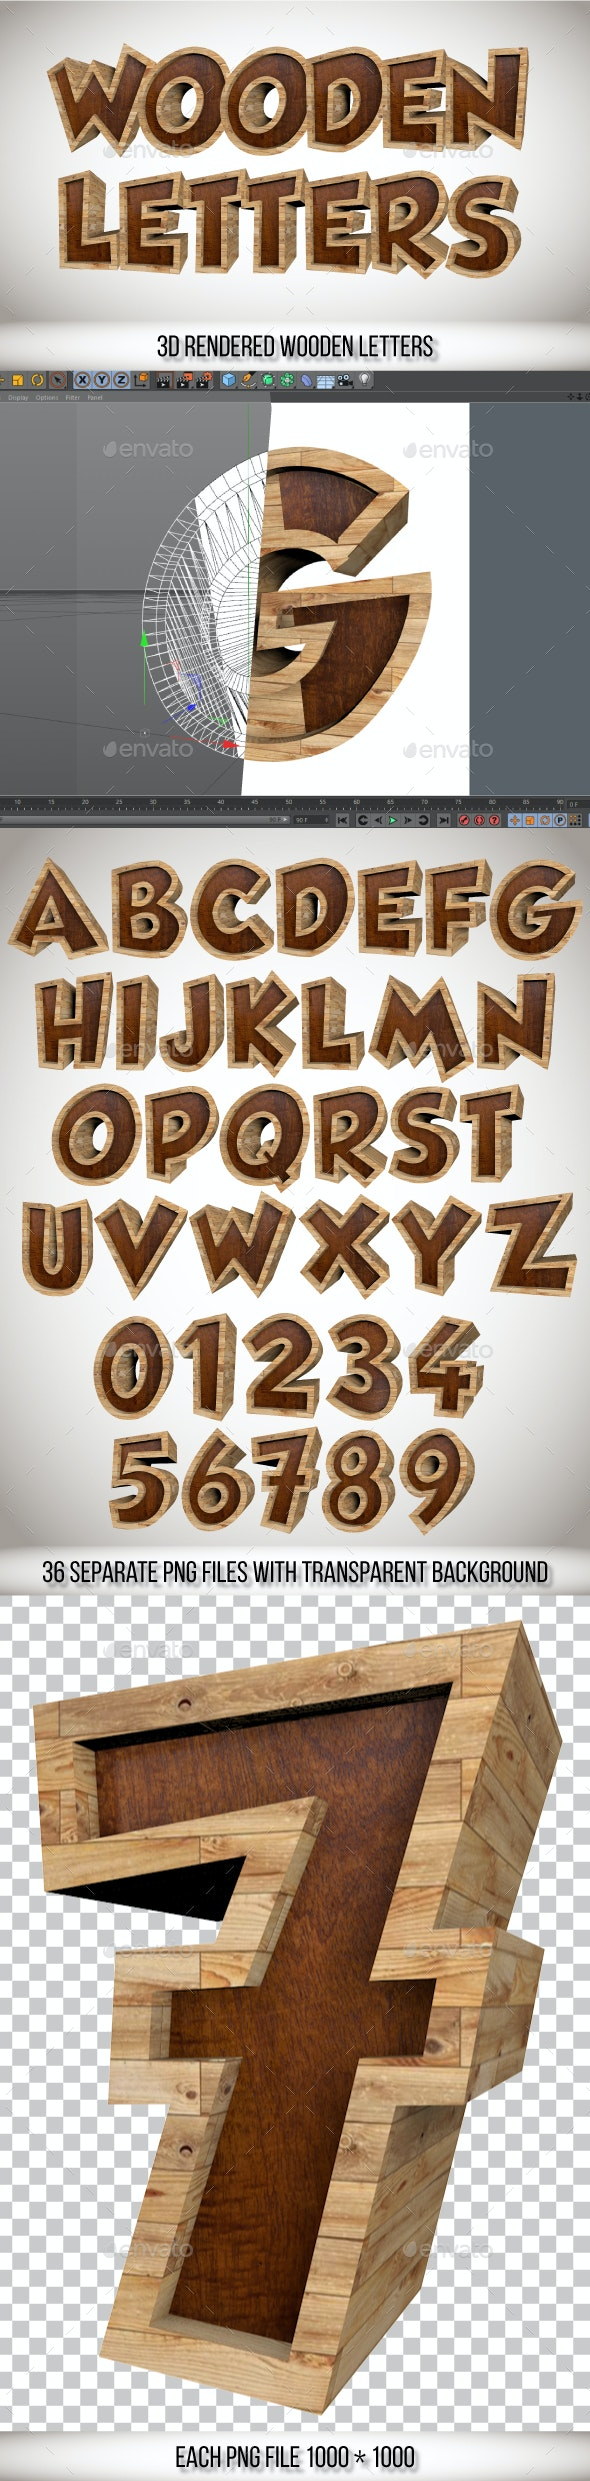 3D Wooden Letters and Numbers - Text 3D Renders